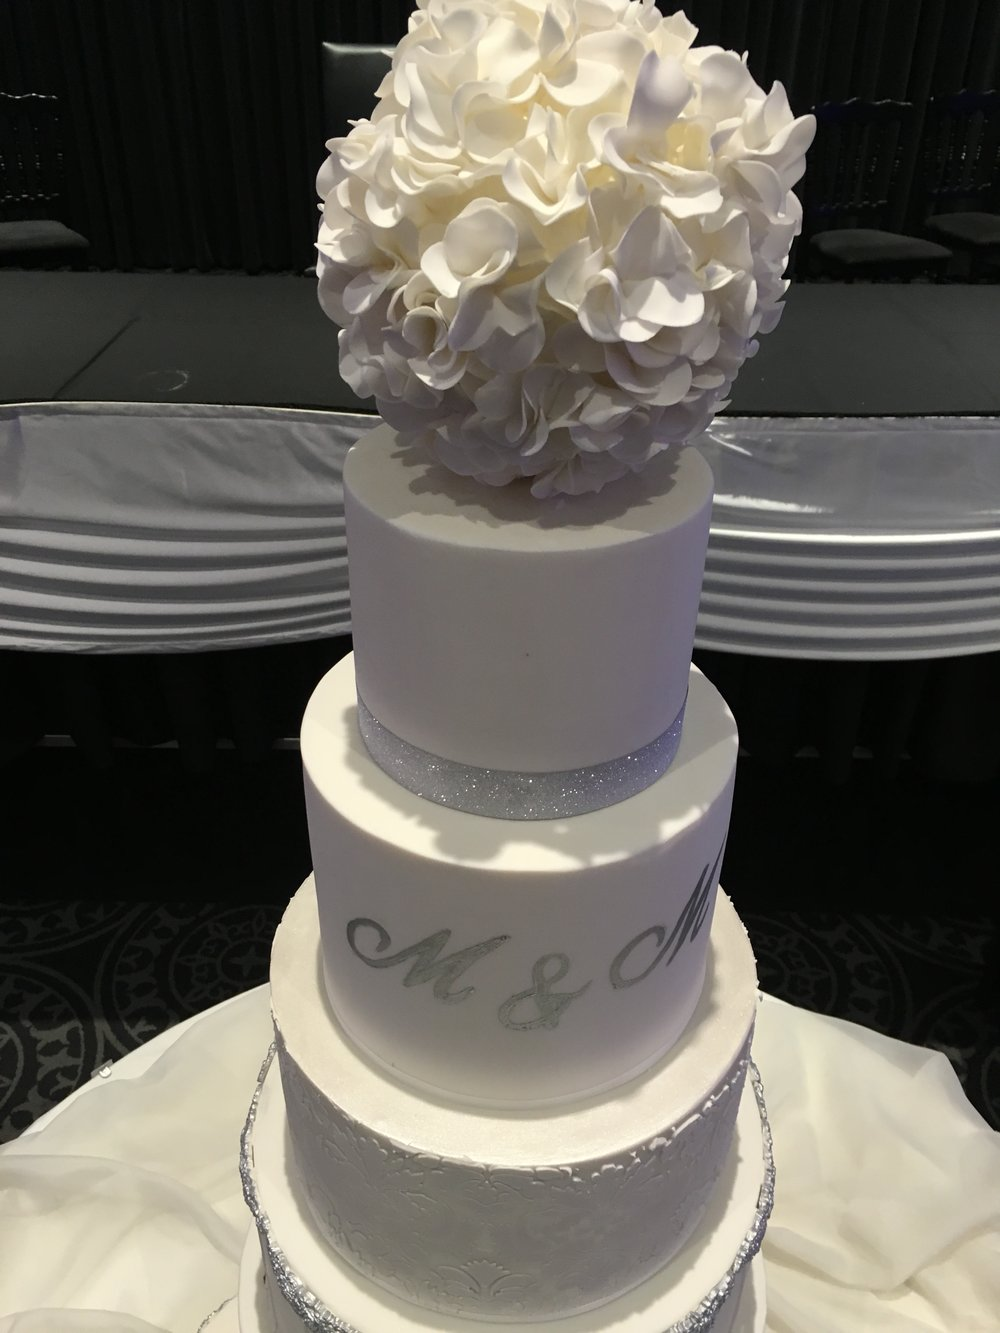 6 Tier Showstopper Wedding Cake